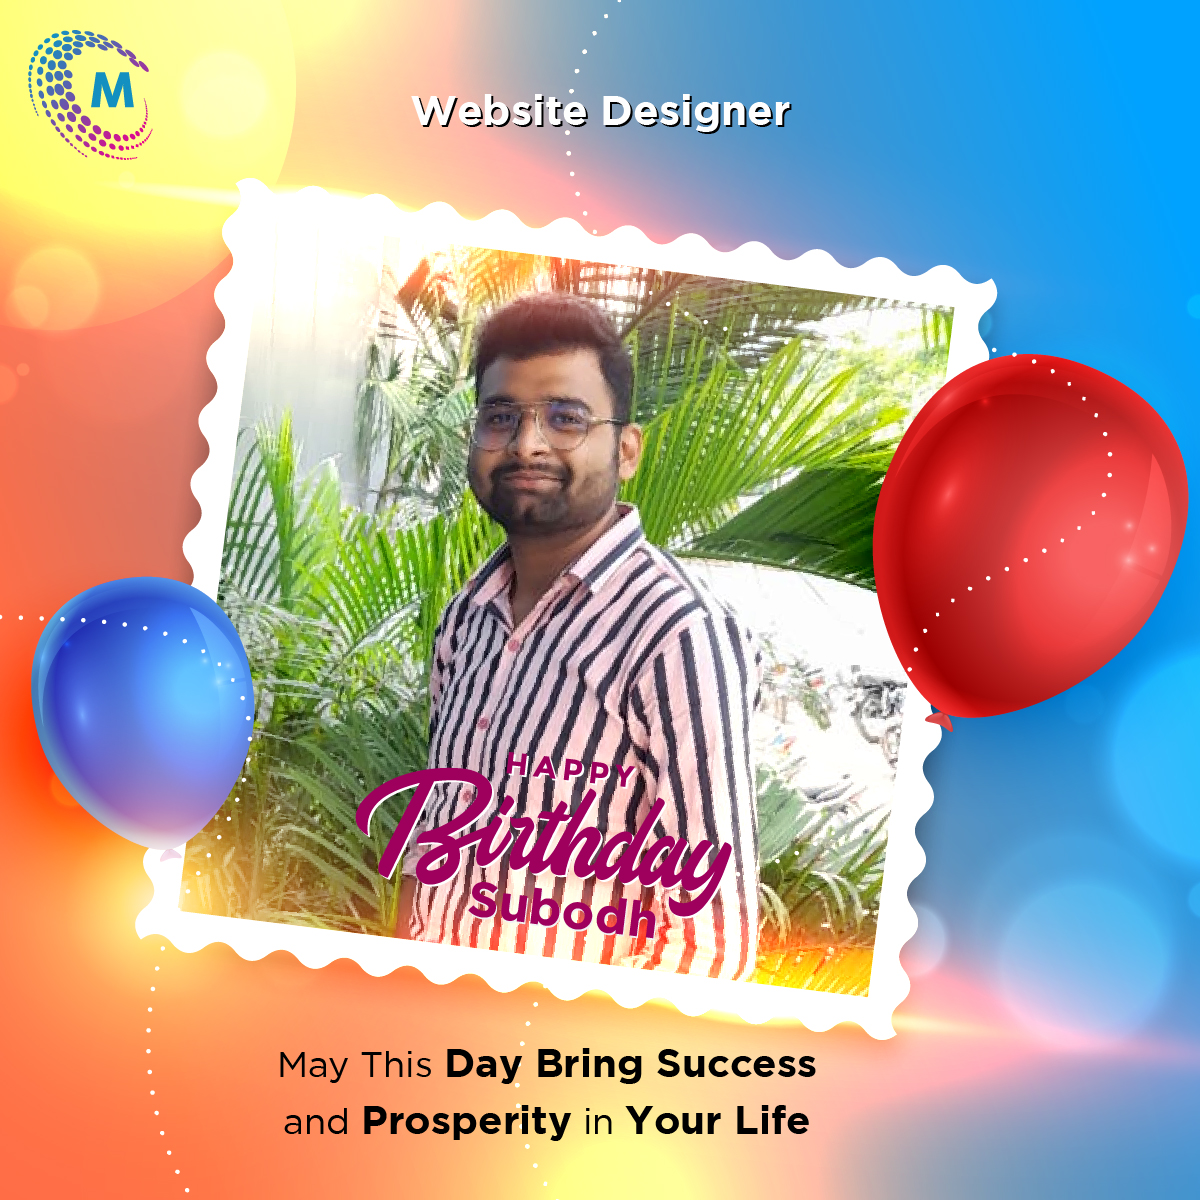 Happy Birthday Subodh  May This Day Bring Success and Prosperity in Your Life. . #milkywayinfotech #milkywaybirthdaywishes #happybirthday #birthdaywishes #birthdayparty #celebrations #birthdaycelebrations